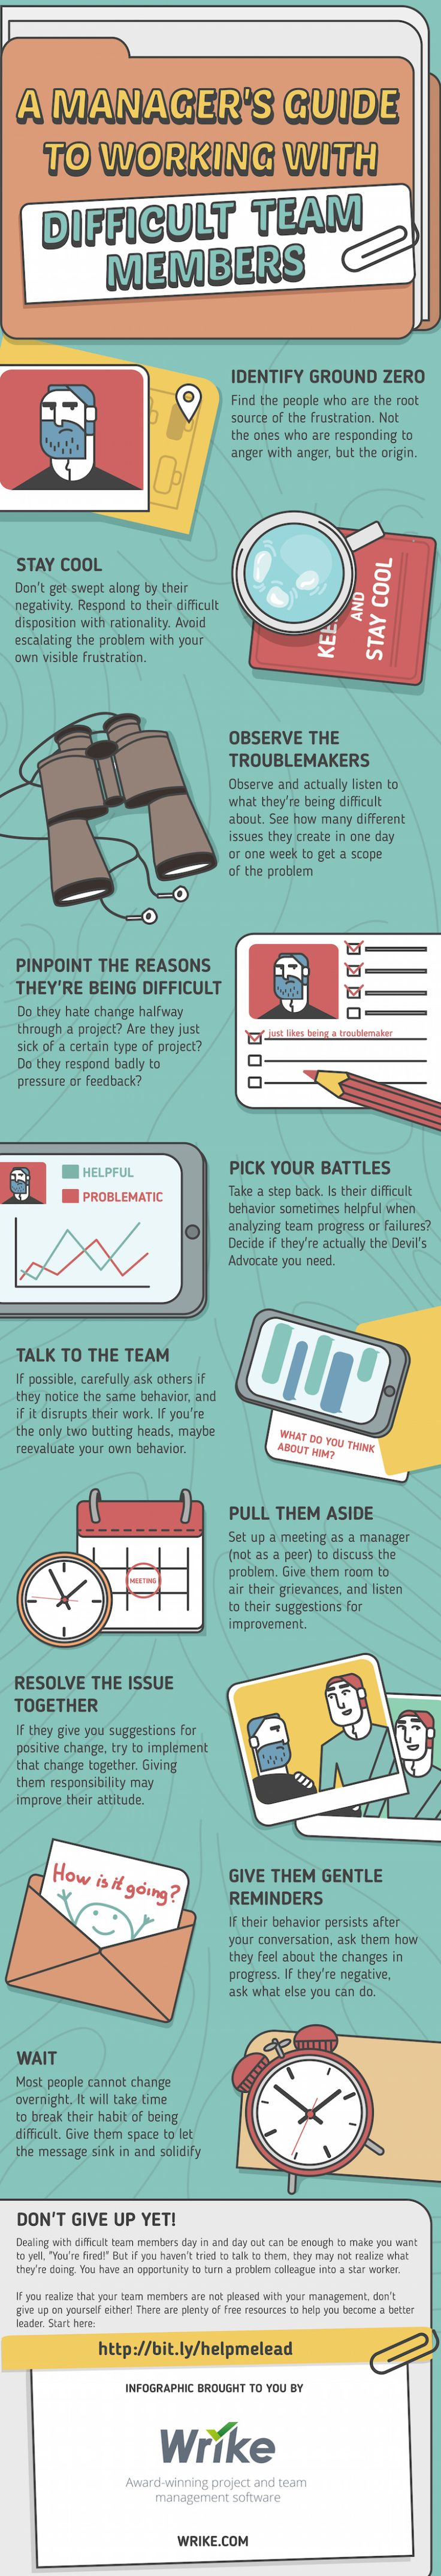 What Are 11 Tips For Managing Difficult Team Members? #infographic